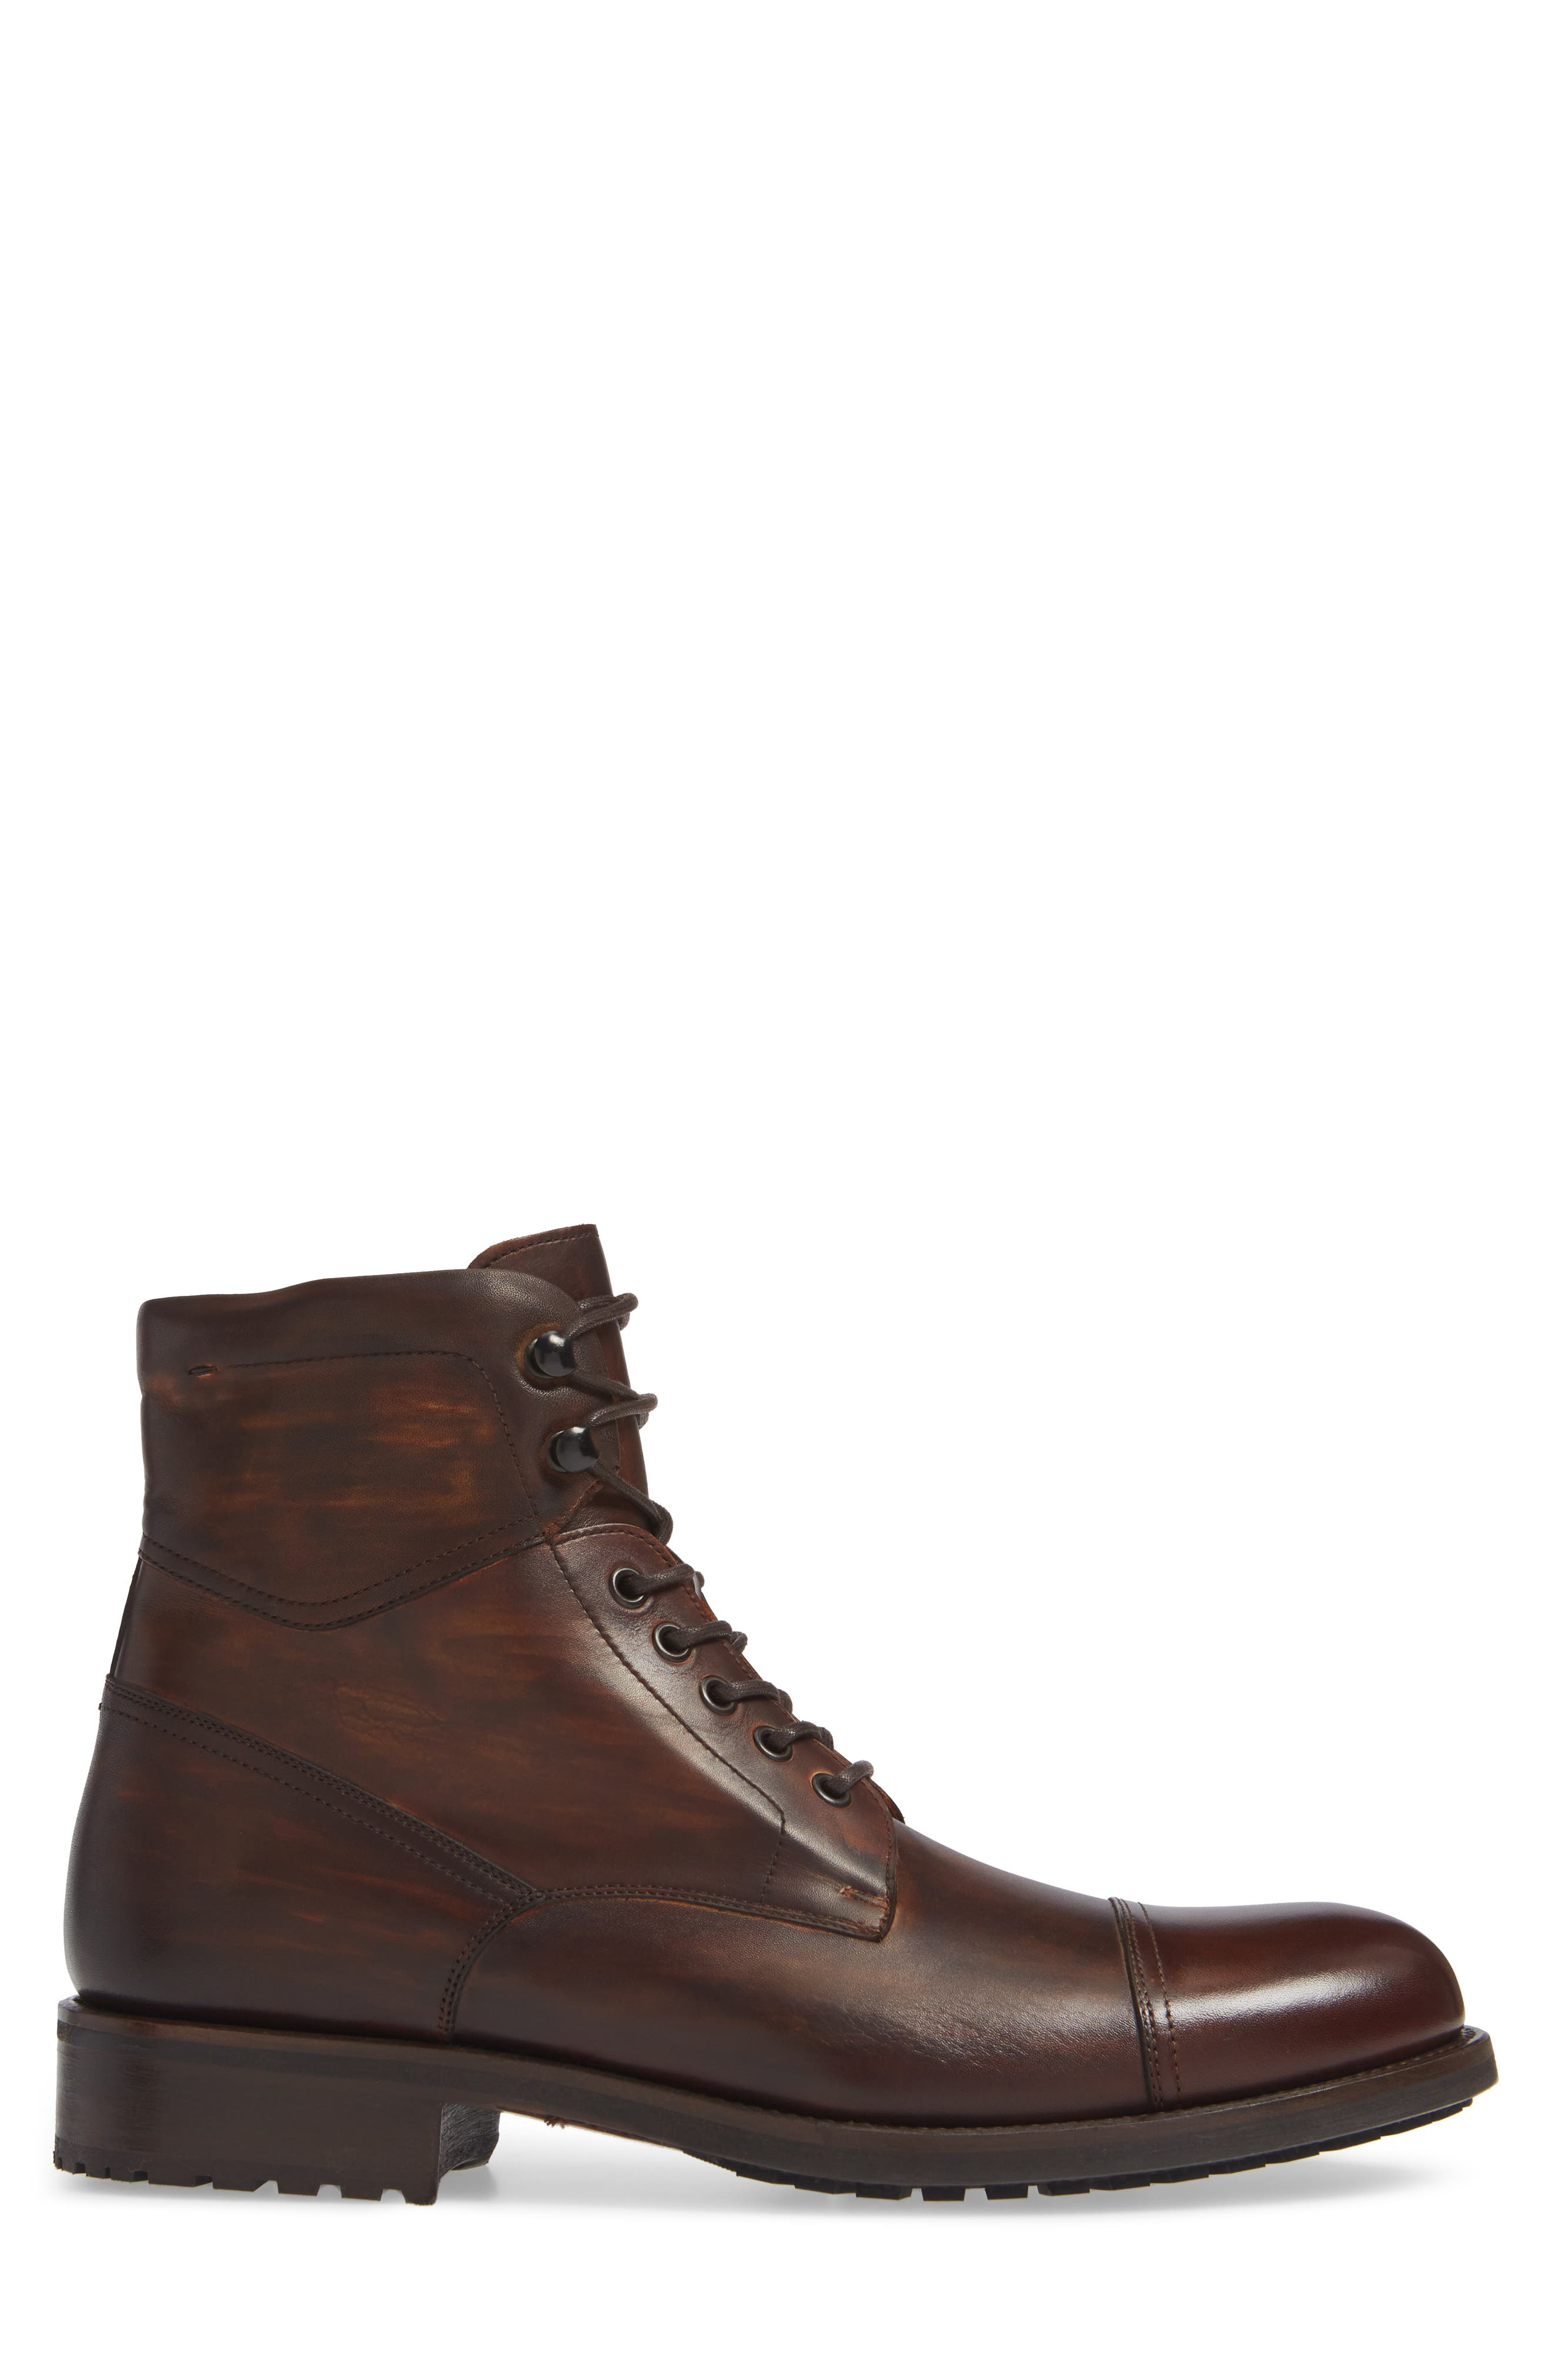 MAGNANNI, Peyton Cap Toe Boot, Alternate thumbnail 3, color, TOBACCO LEATHER